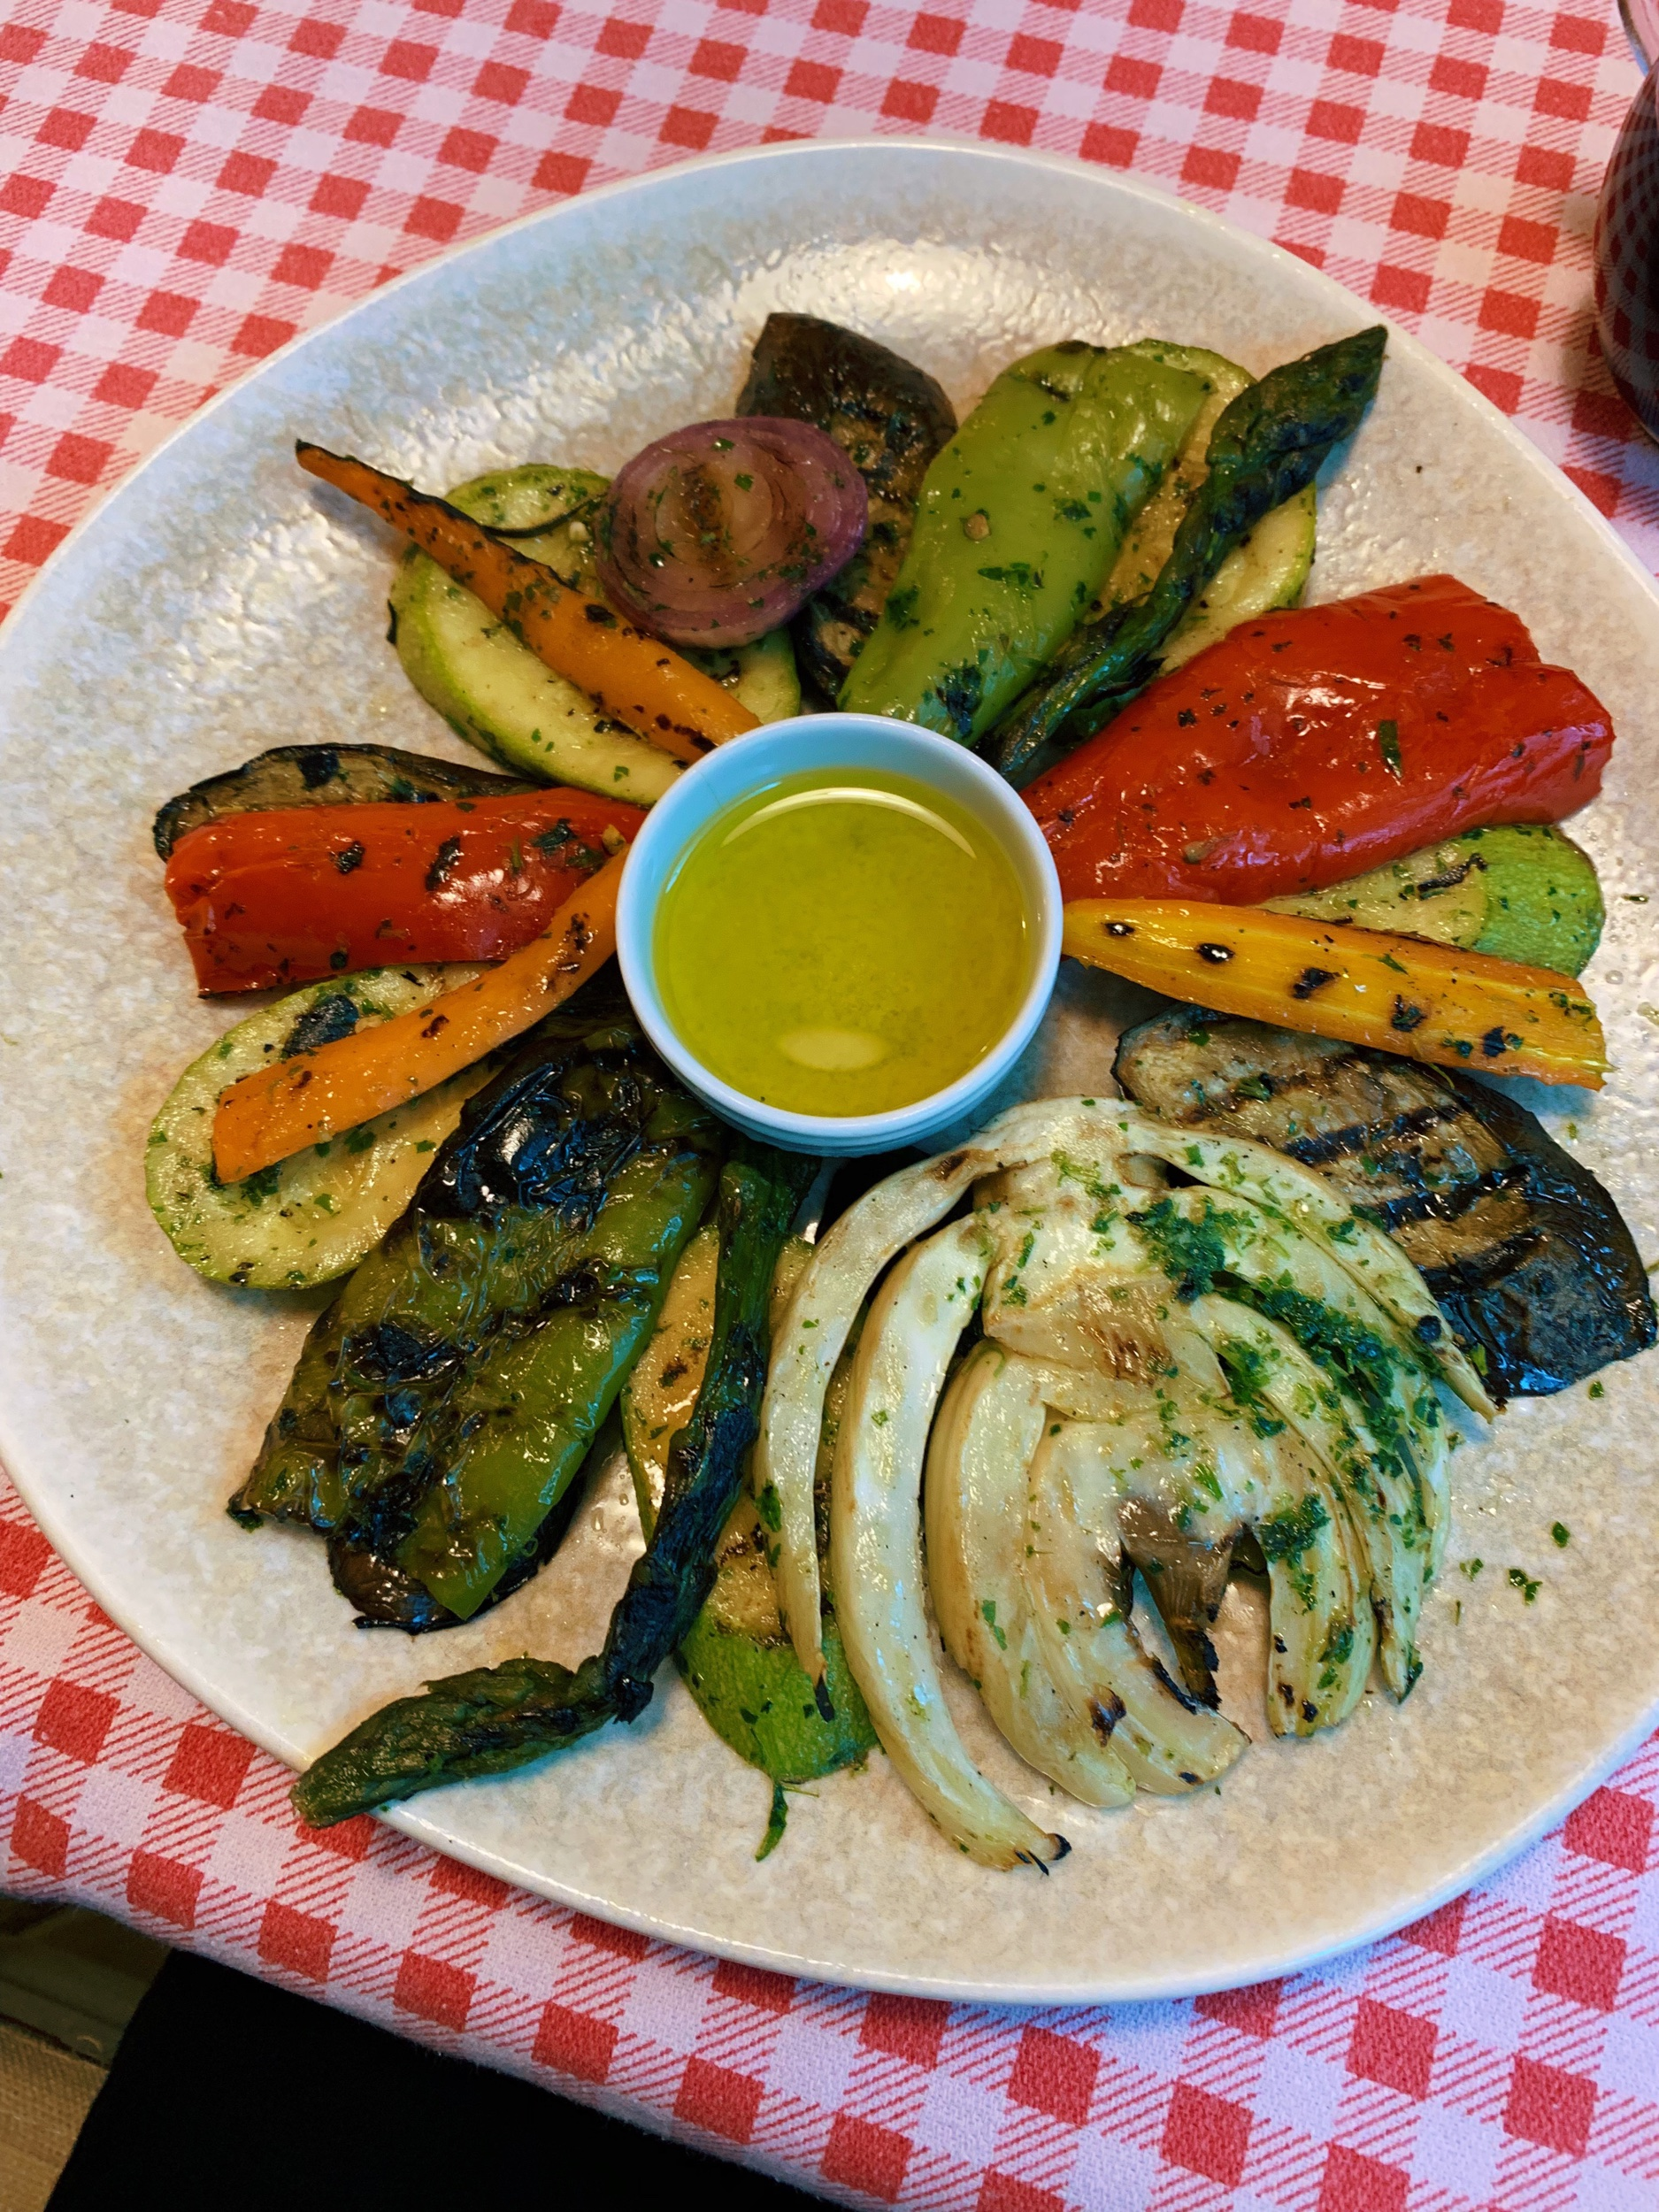 Grilled vegetables at ERA. This restaurant has a mix of Italian and Albanian food. Italy has had a big influence on Albania, which is just a ferry ride away. At one point under the Mussolini government, Italy occupied Albania.